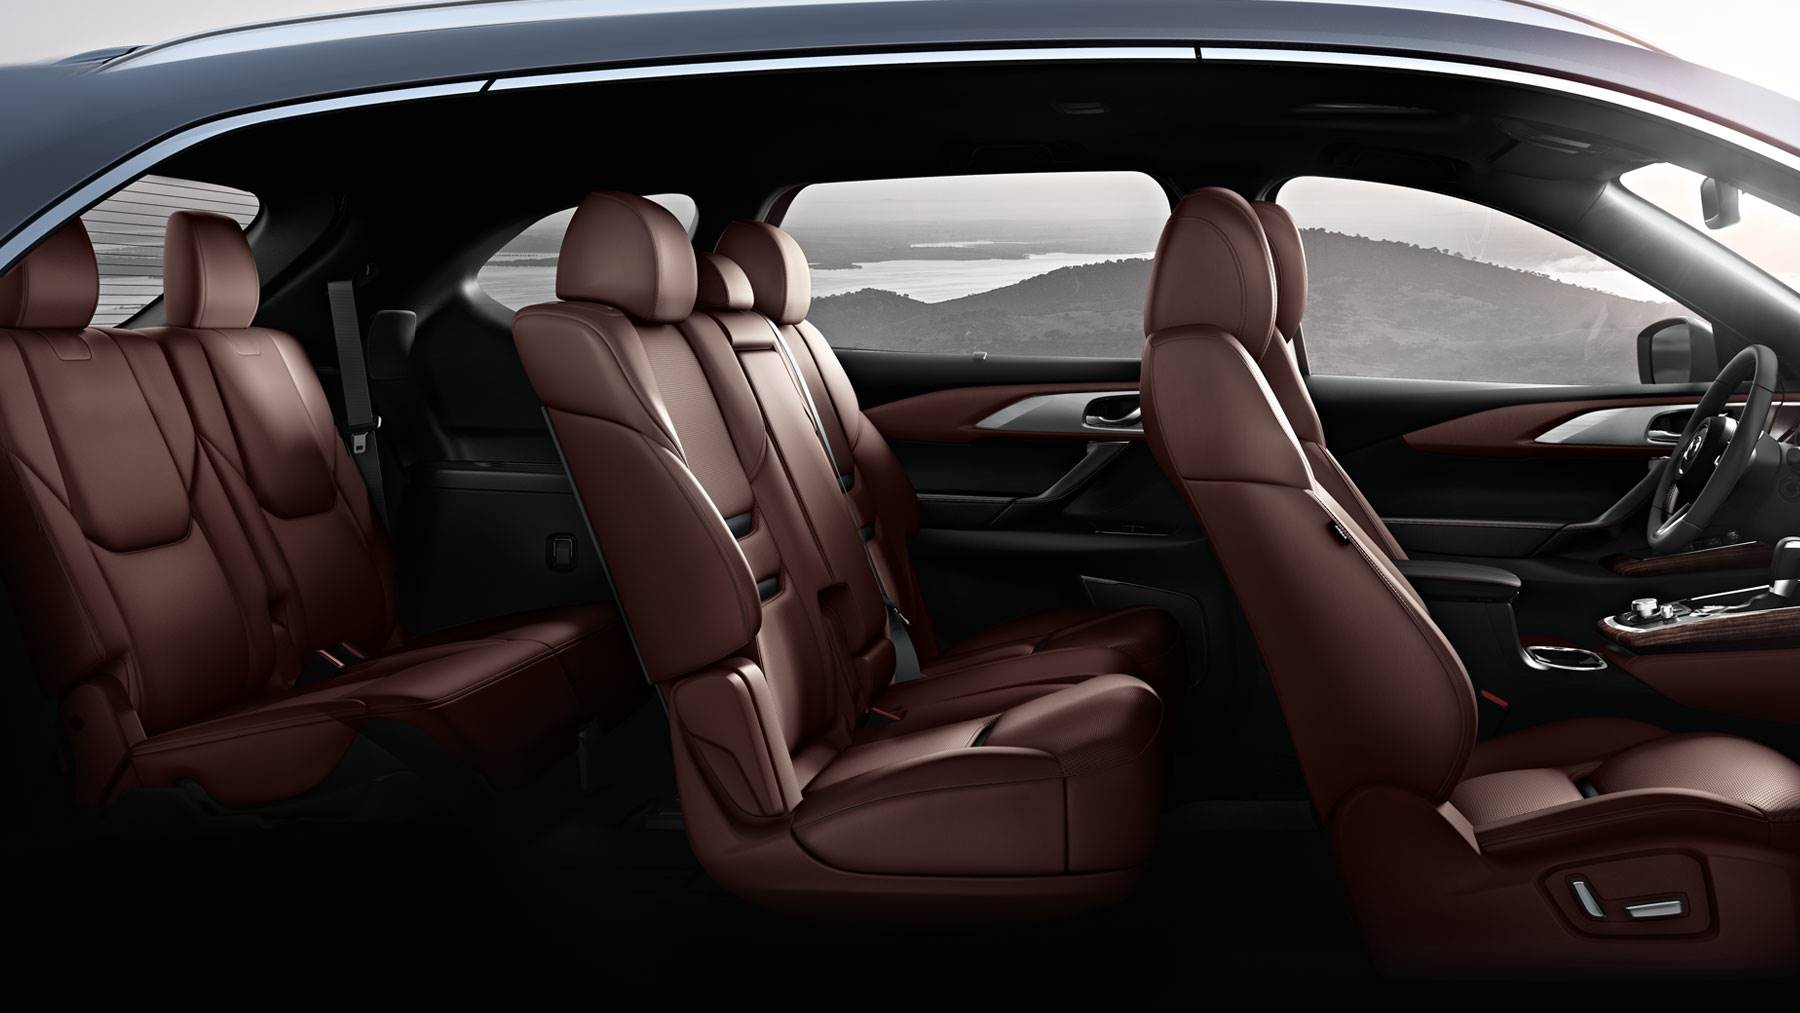 Leather Seats in the Mazda CX-9